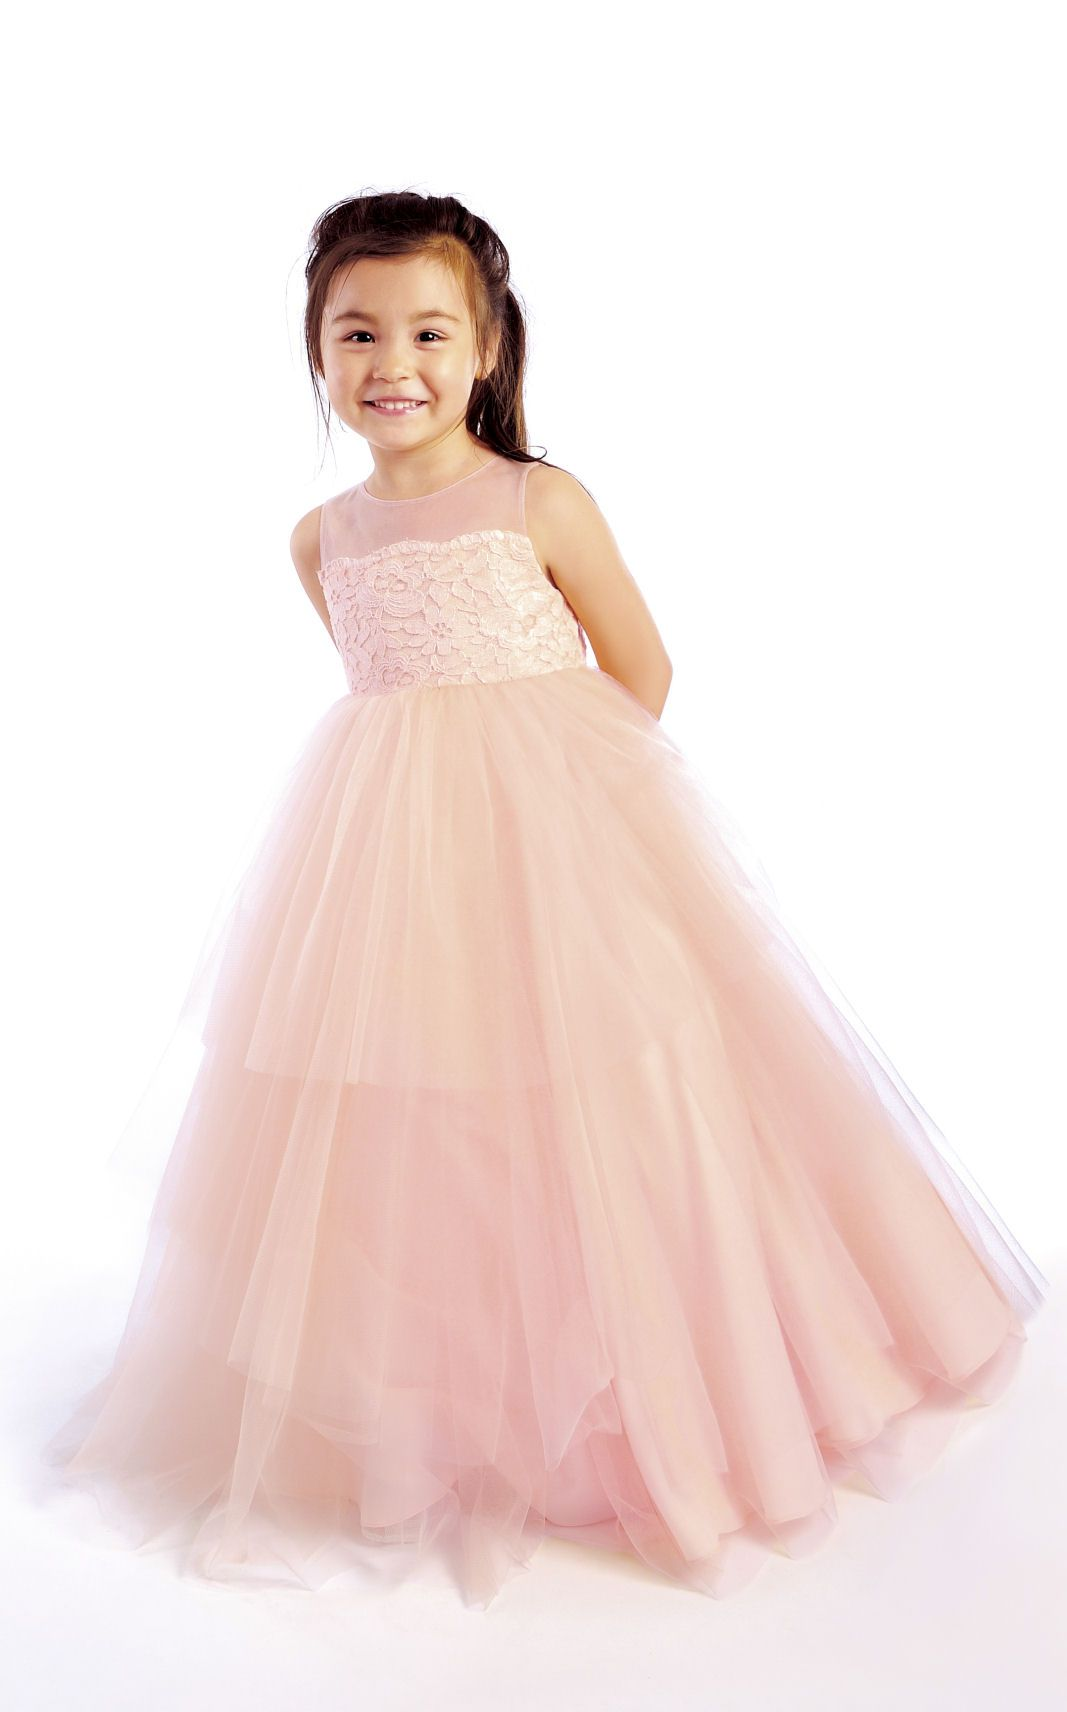 Yf3401 from jasmine flowergirls gowns pinterest jasmine yf3401 from jasmine flowergirls izmirmasajfo